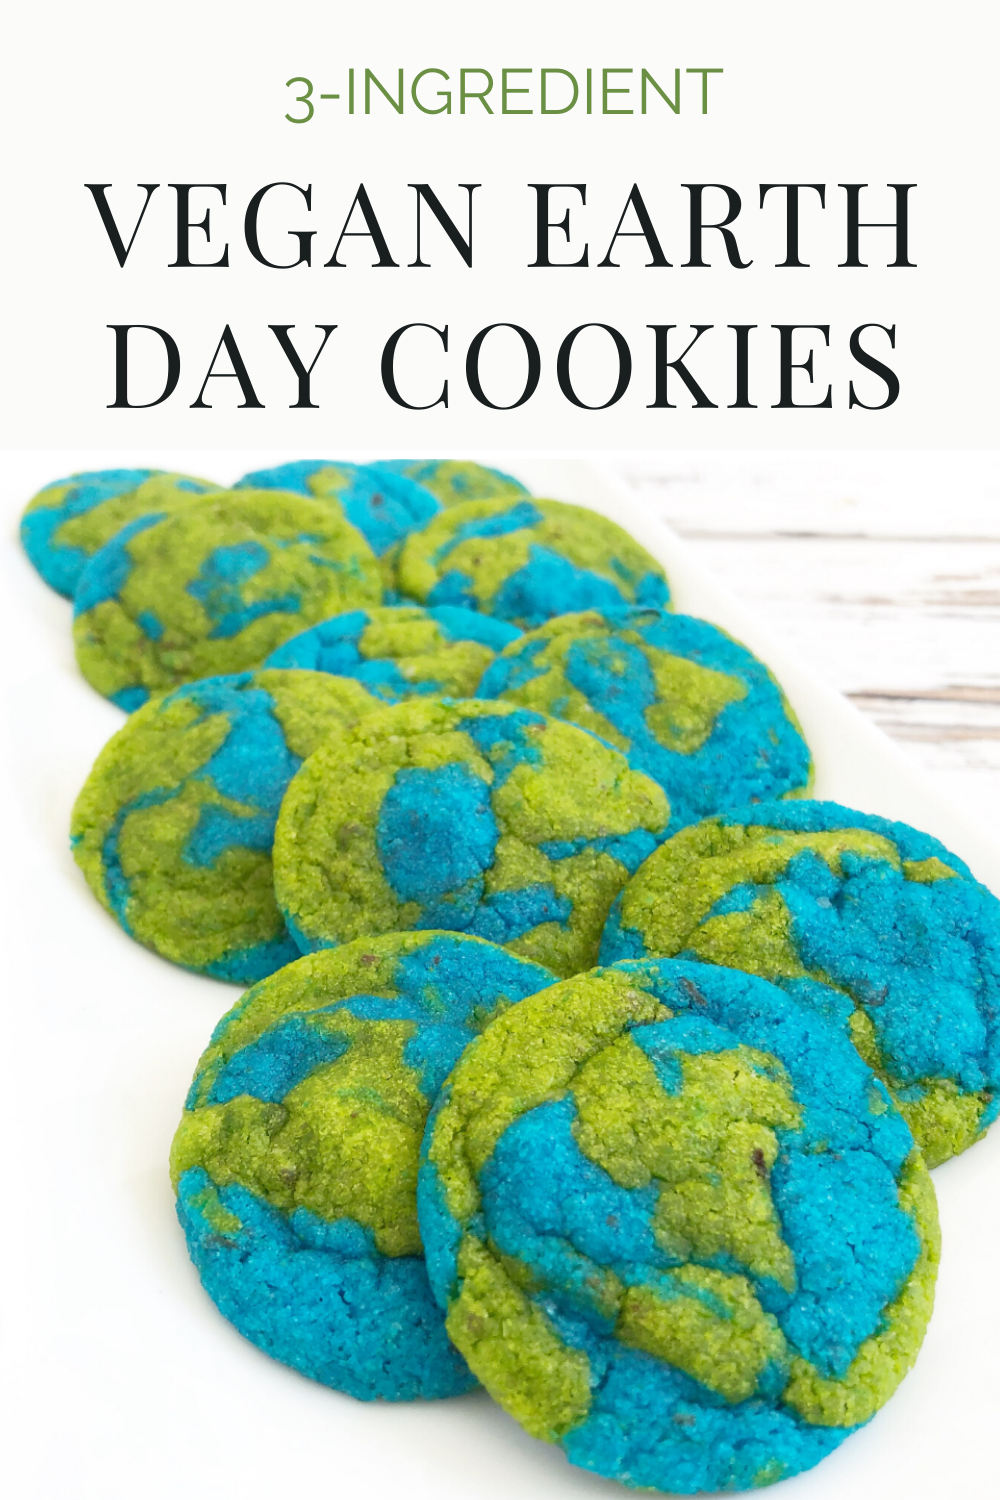 Vegan Earth Day Cookies! These semi-homemade and dairy-free cookies are super easy and fun to make. Perfect for Earth Day! #earthdayrecipes #veganearthday #earthdaycookiesrecipe #earthdaycookiesforkids #earthdaycookiessugar #earthdaycookiesvegan #kidsbakingideasfun #kidsbakingideaseasy via @thiswifecooks